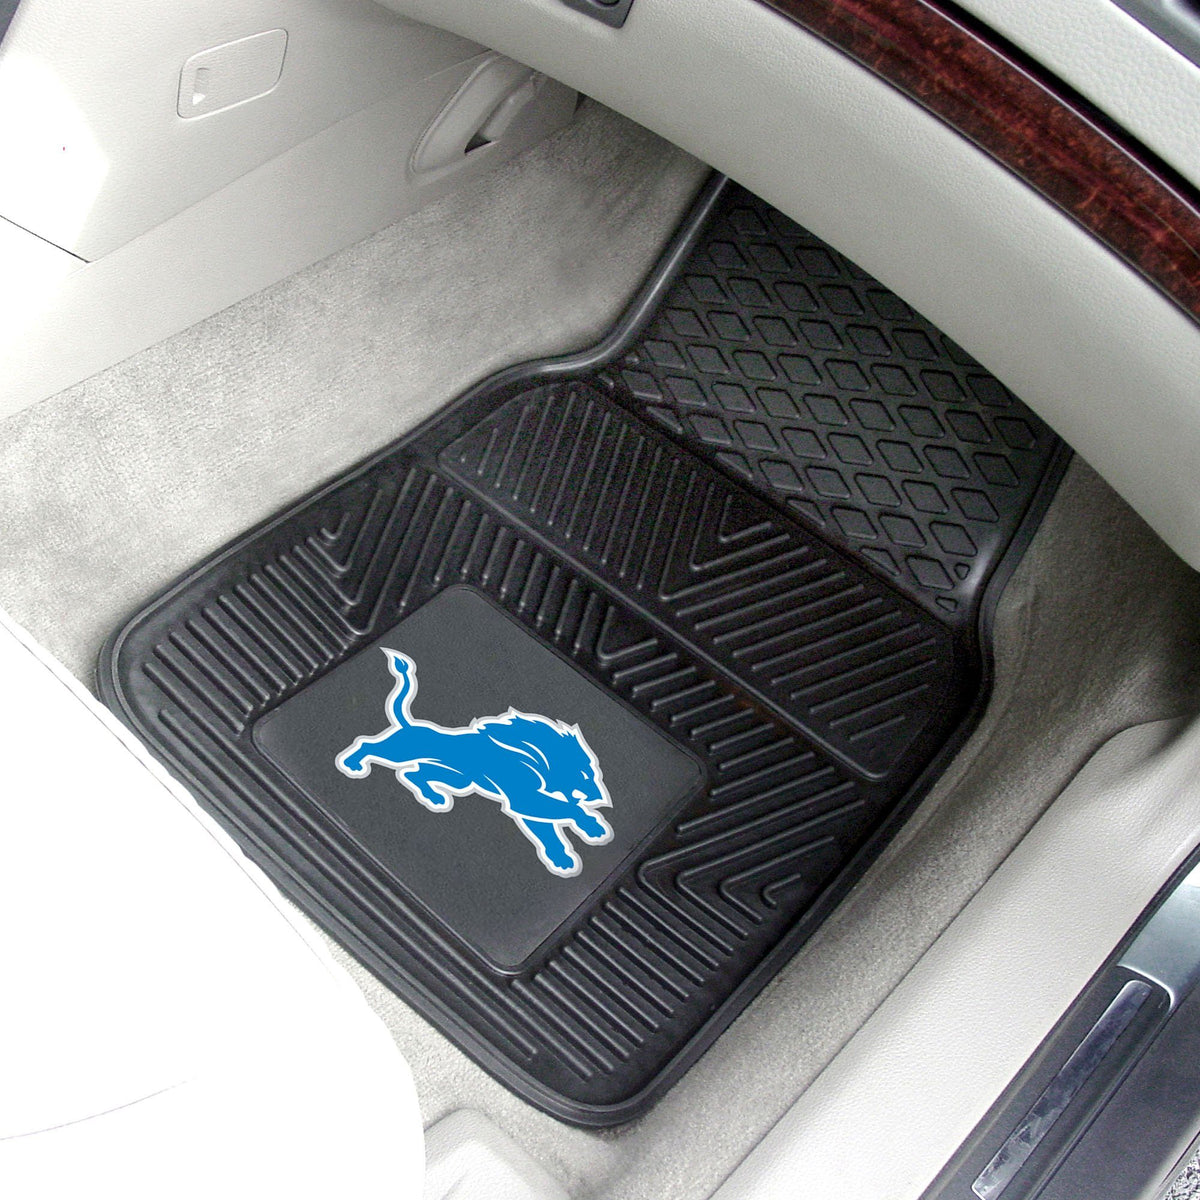 NFL - 2-pc Vinyl Car Mat Set NFL Mats, Front Car Mats, 2-pc Vinyl Car Mat Set, NFL, Auto Fan Mats Detroit Lions